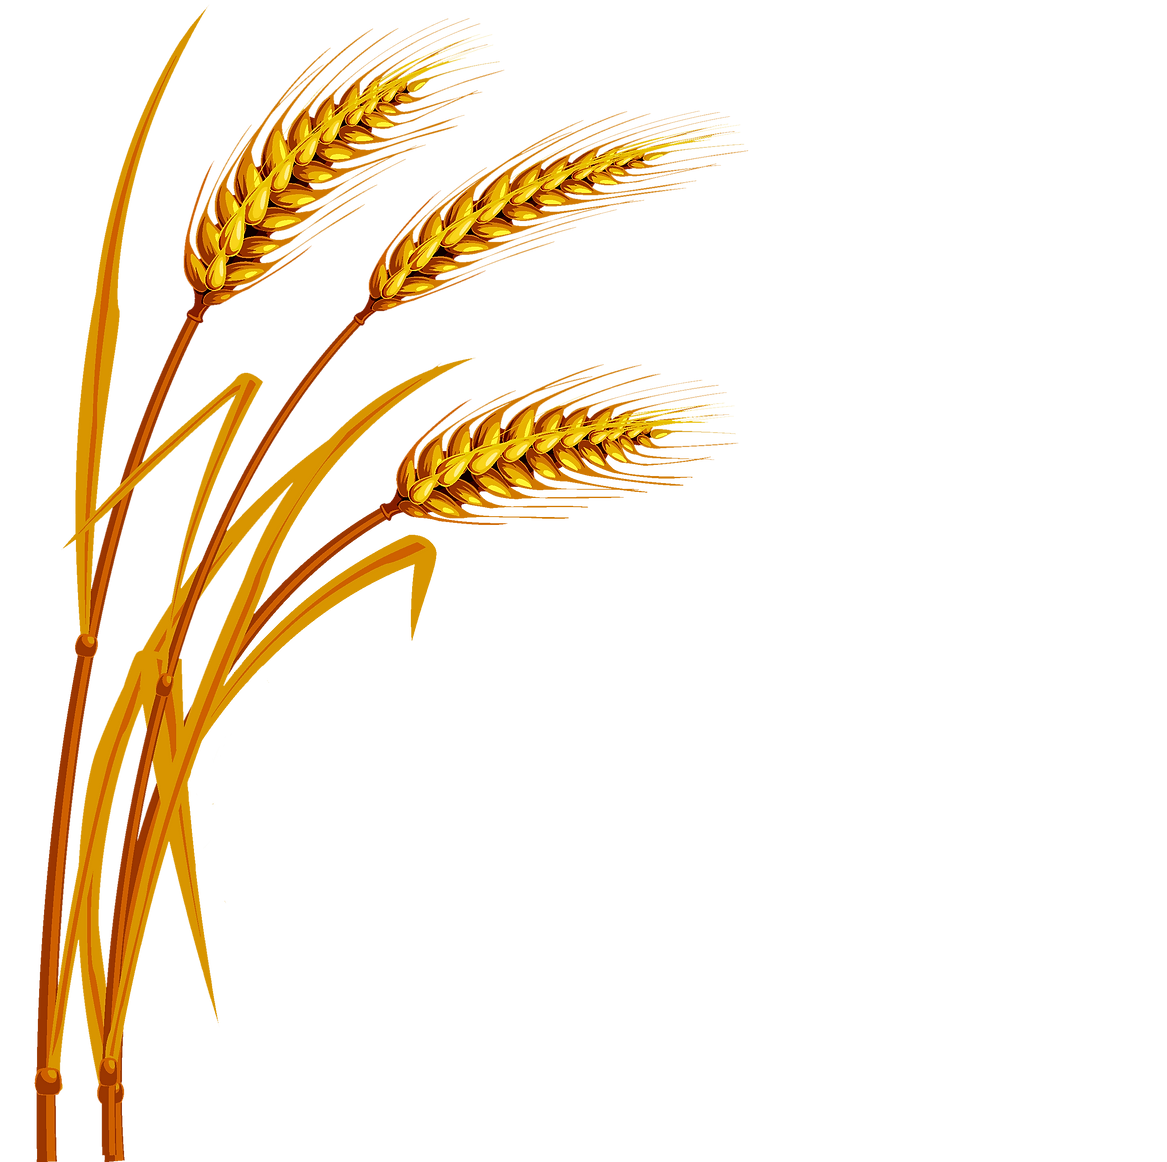 wheat_PNG54_edited.png